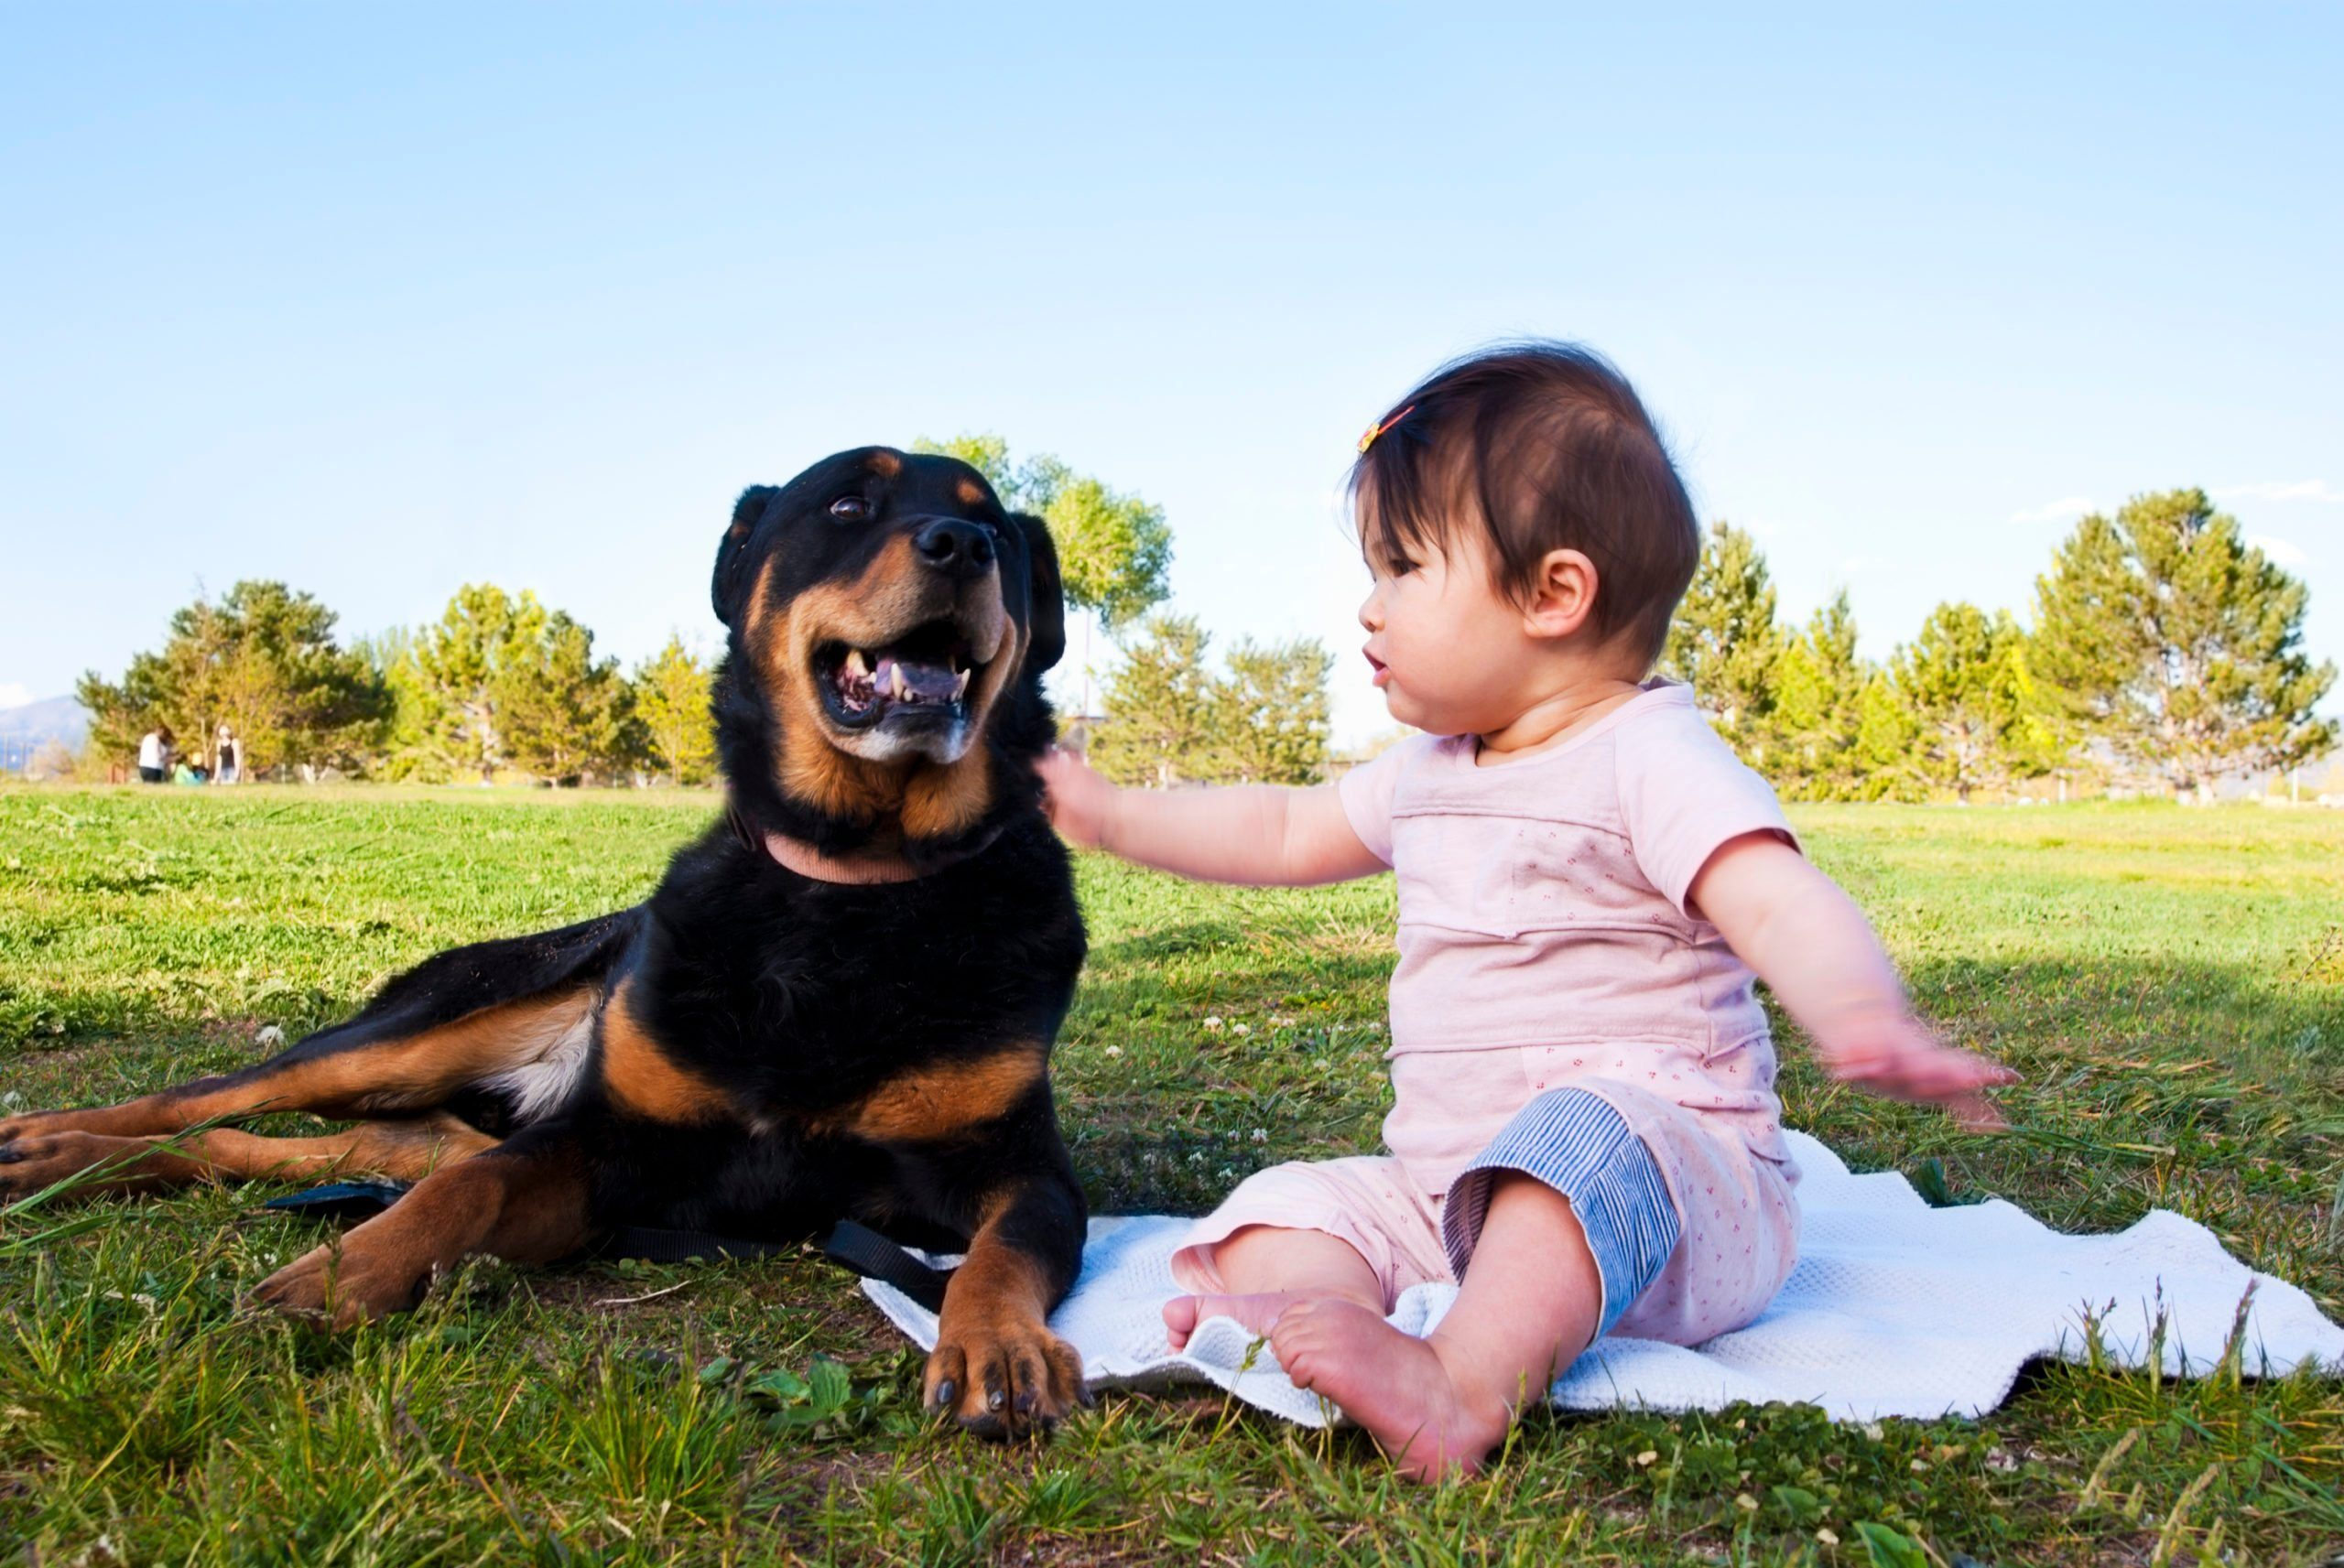 Most affectionate dog breeds - Friendship between dog and baby